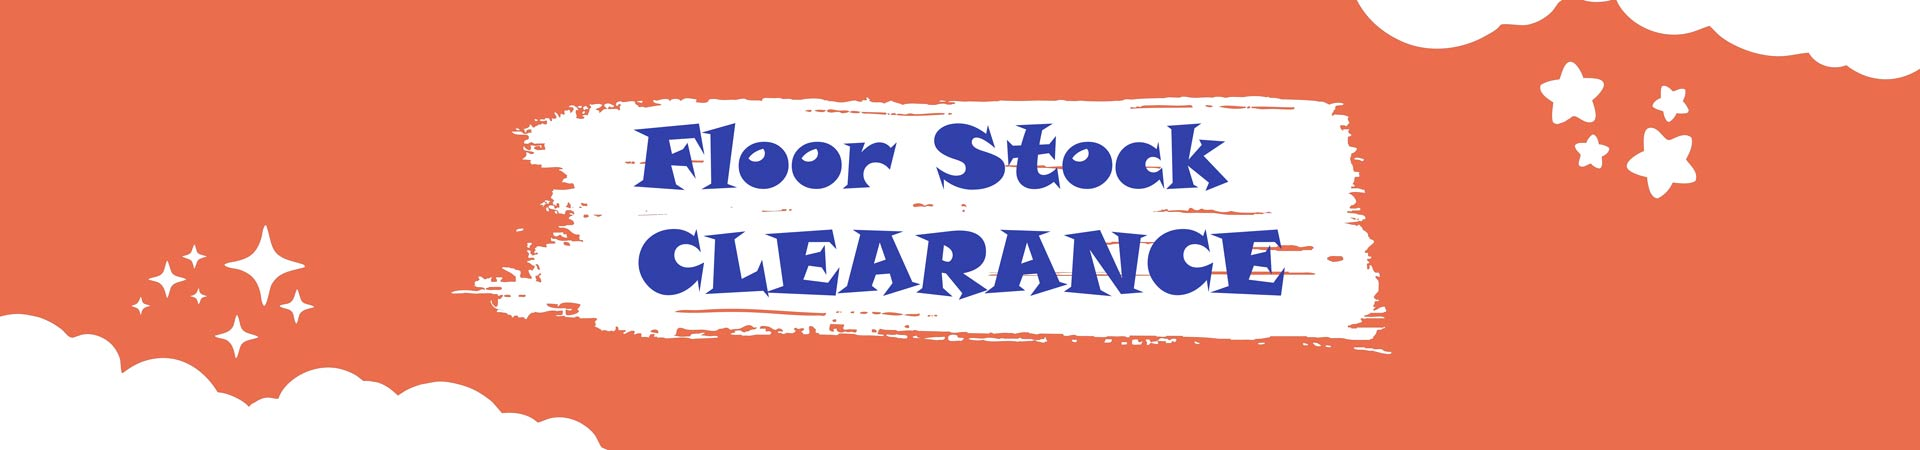 Bedroom warehouse floor stock clearance